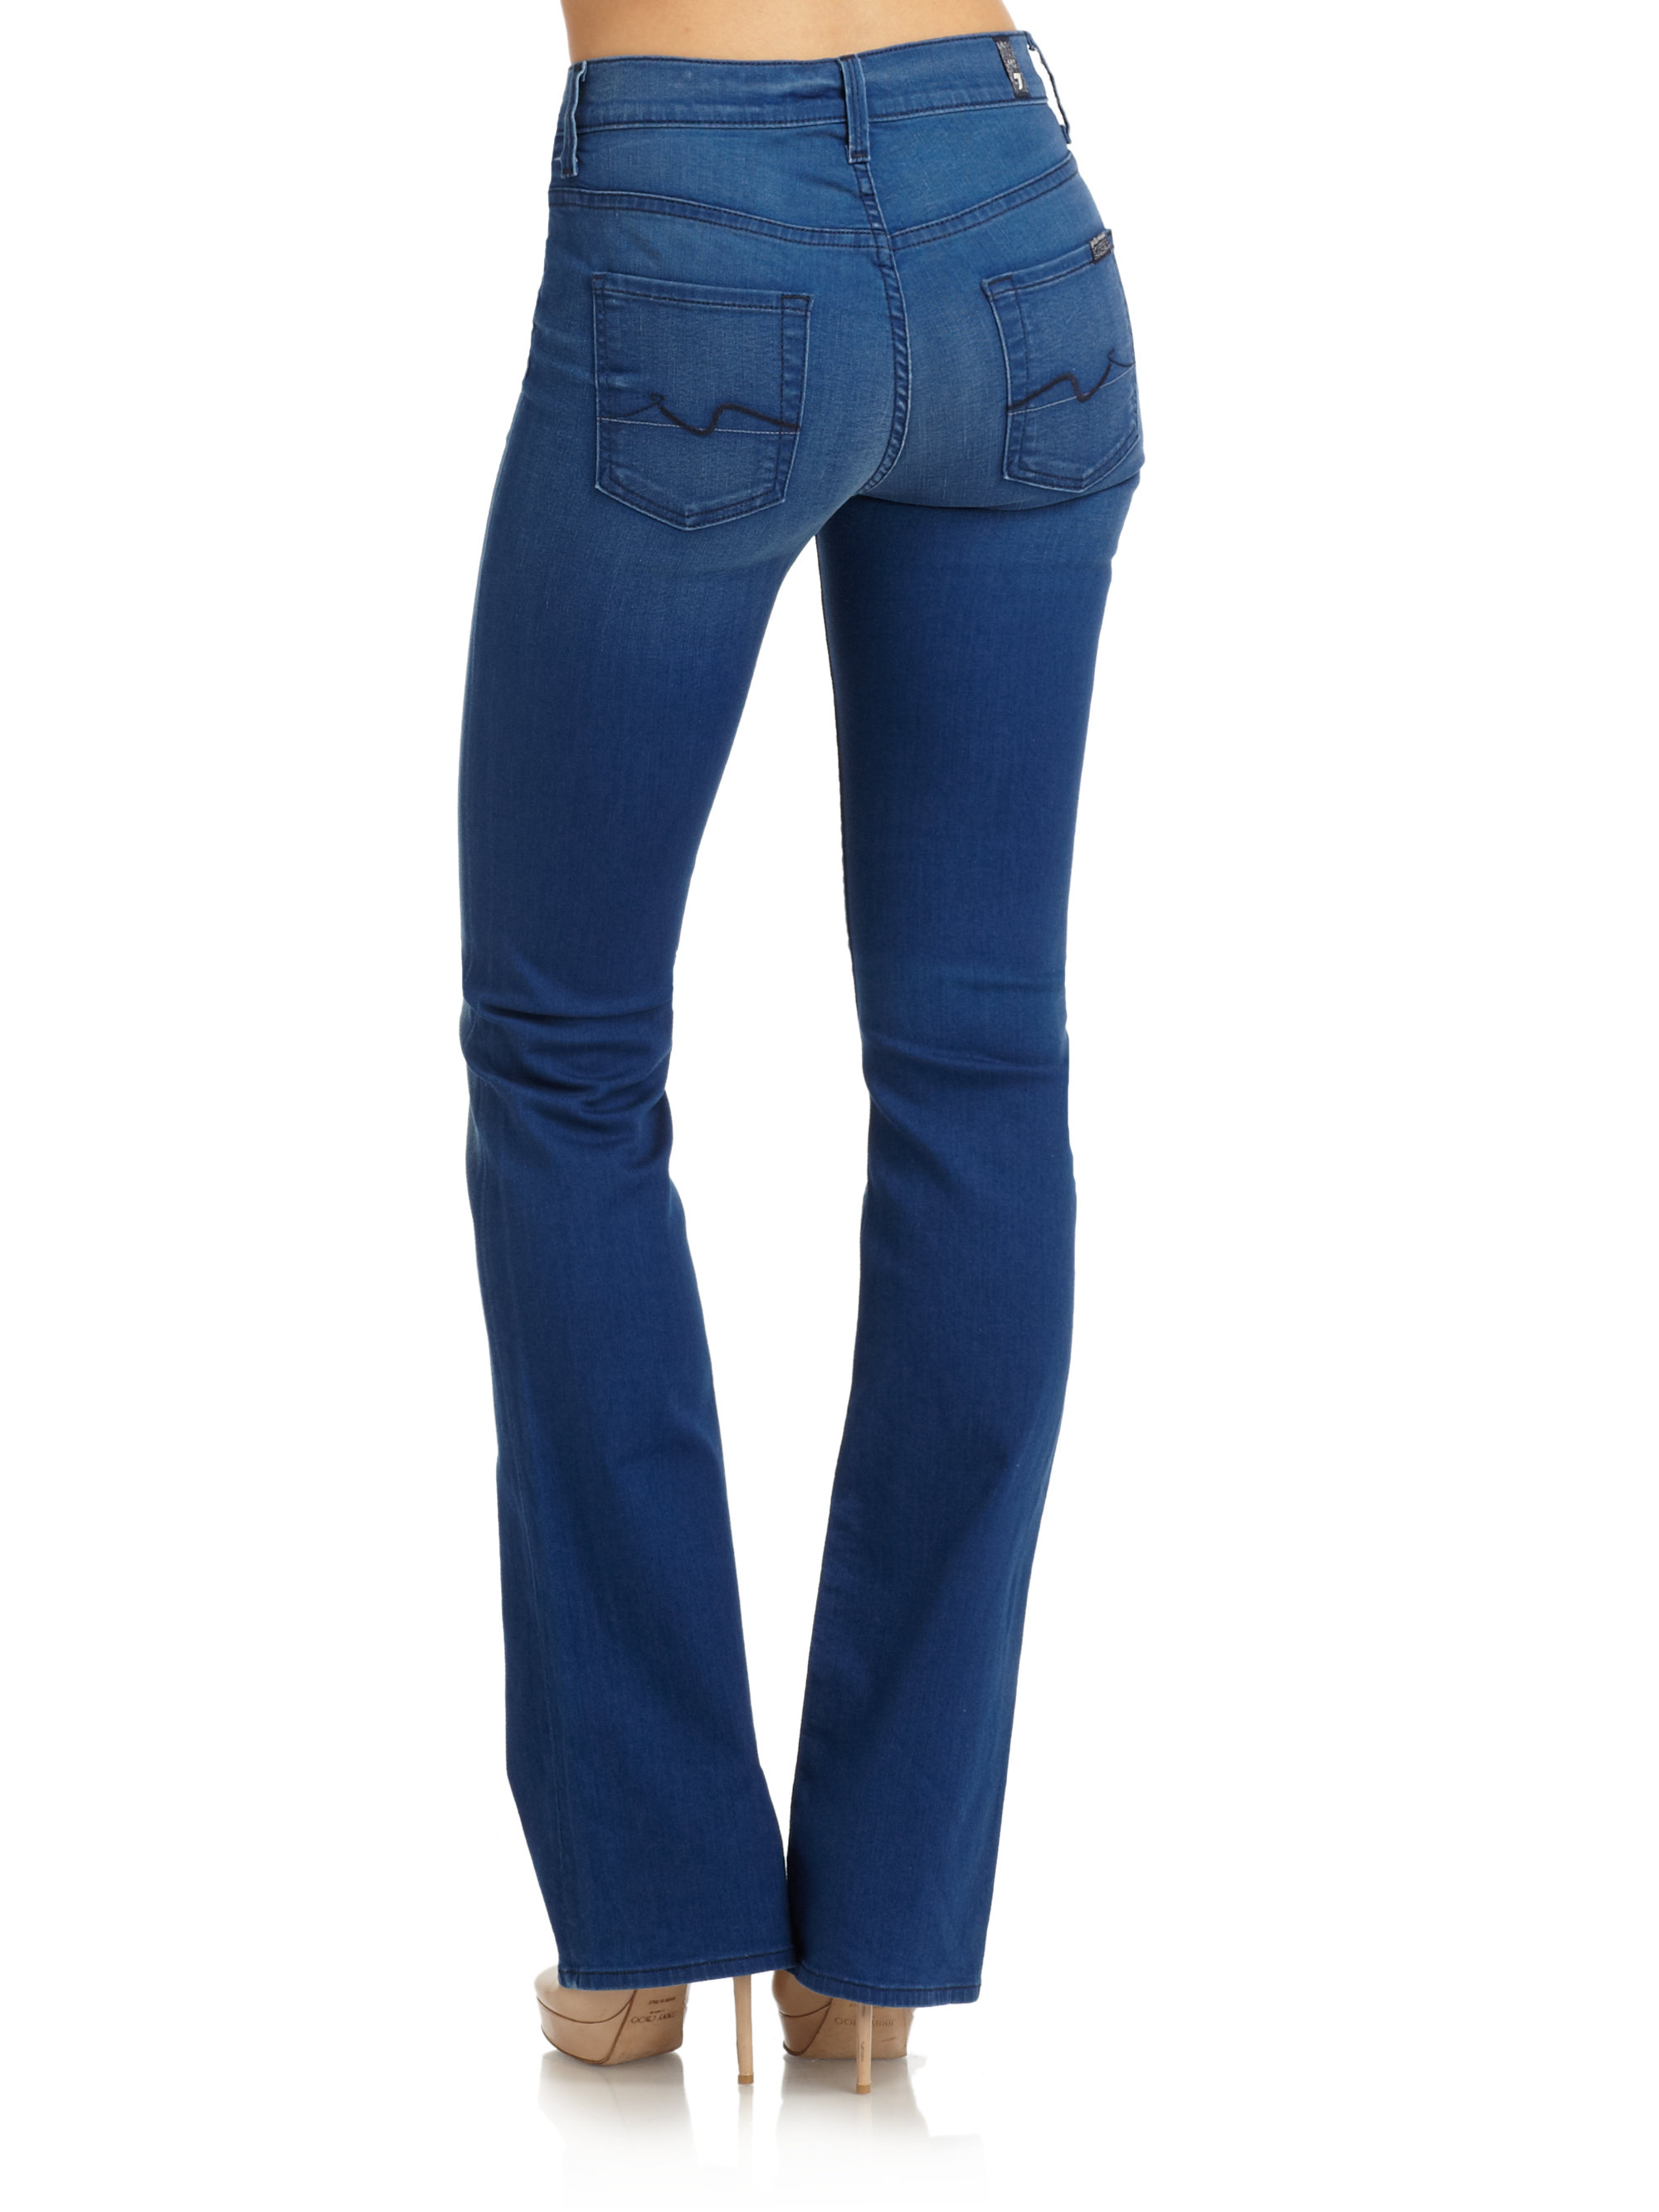 7 for all mankind High Waisted Bootcut Jeans in Blue | Lyst